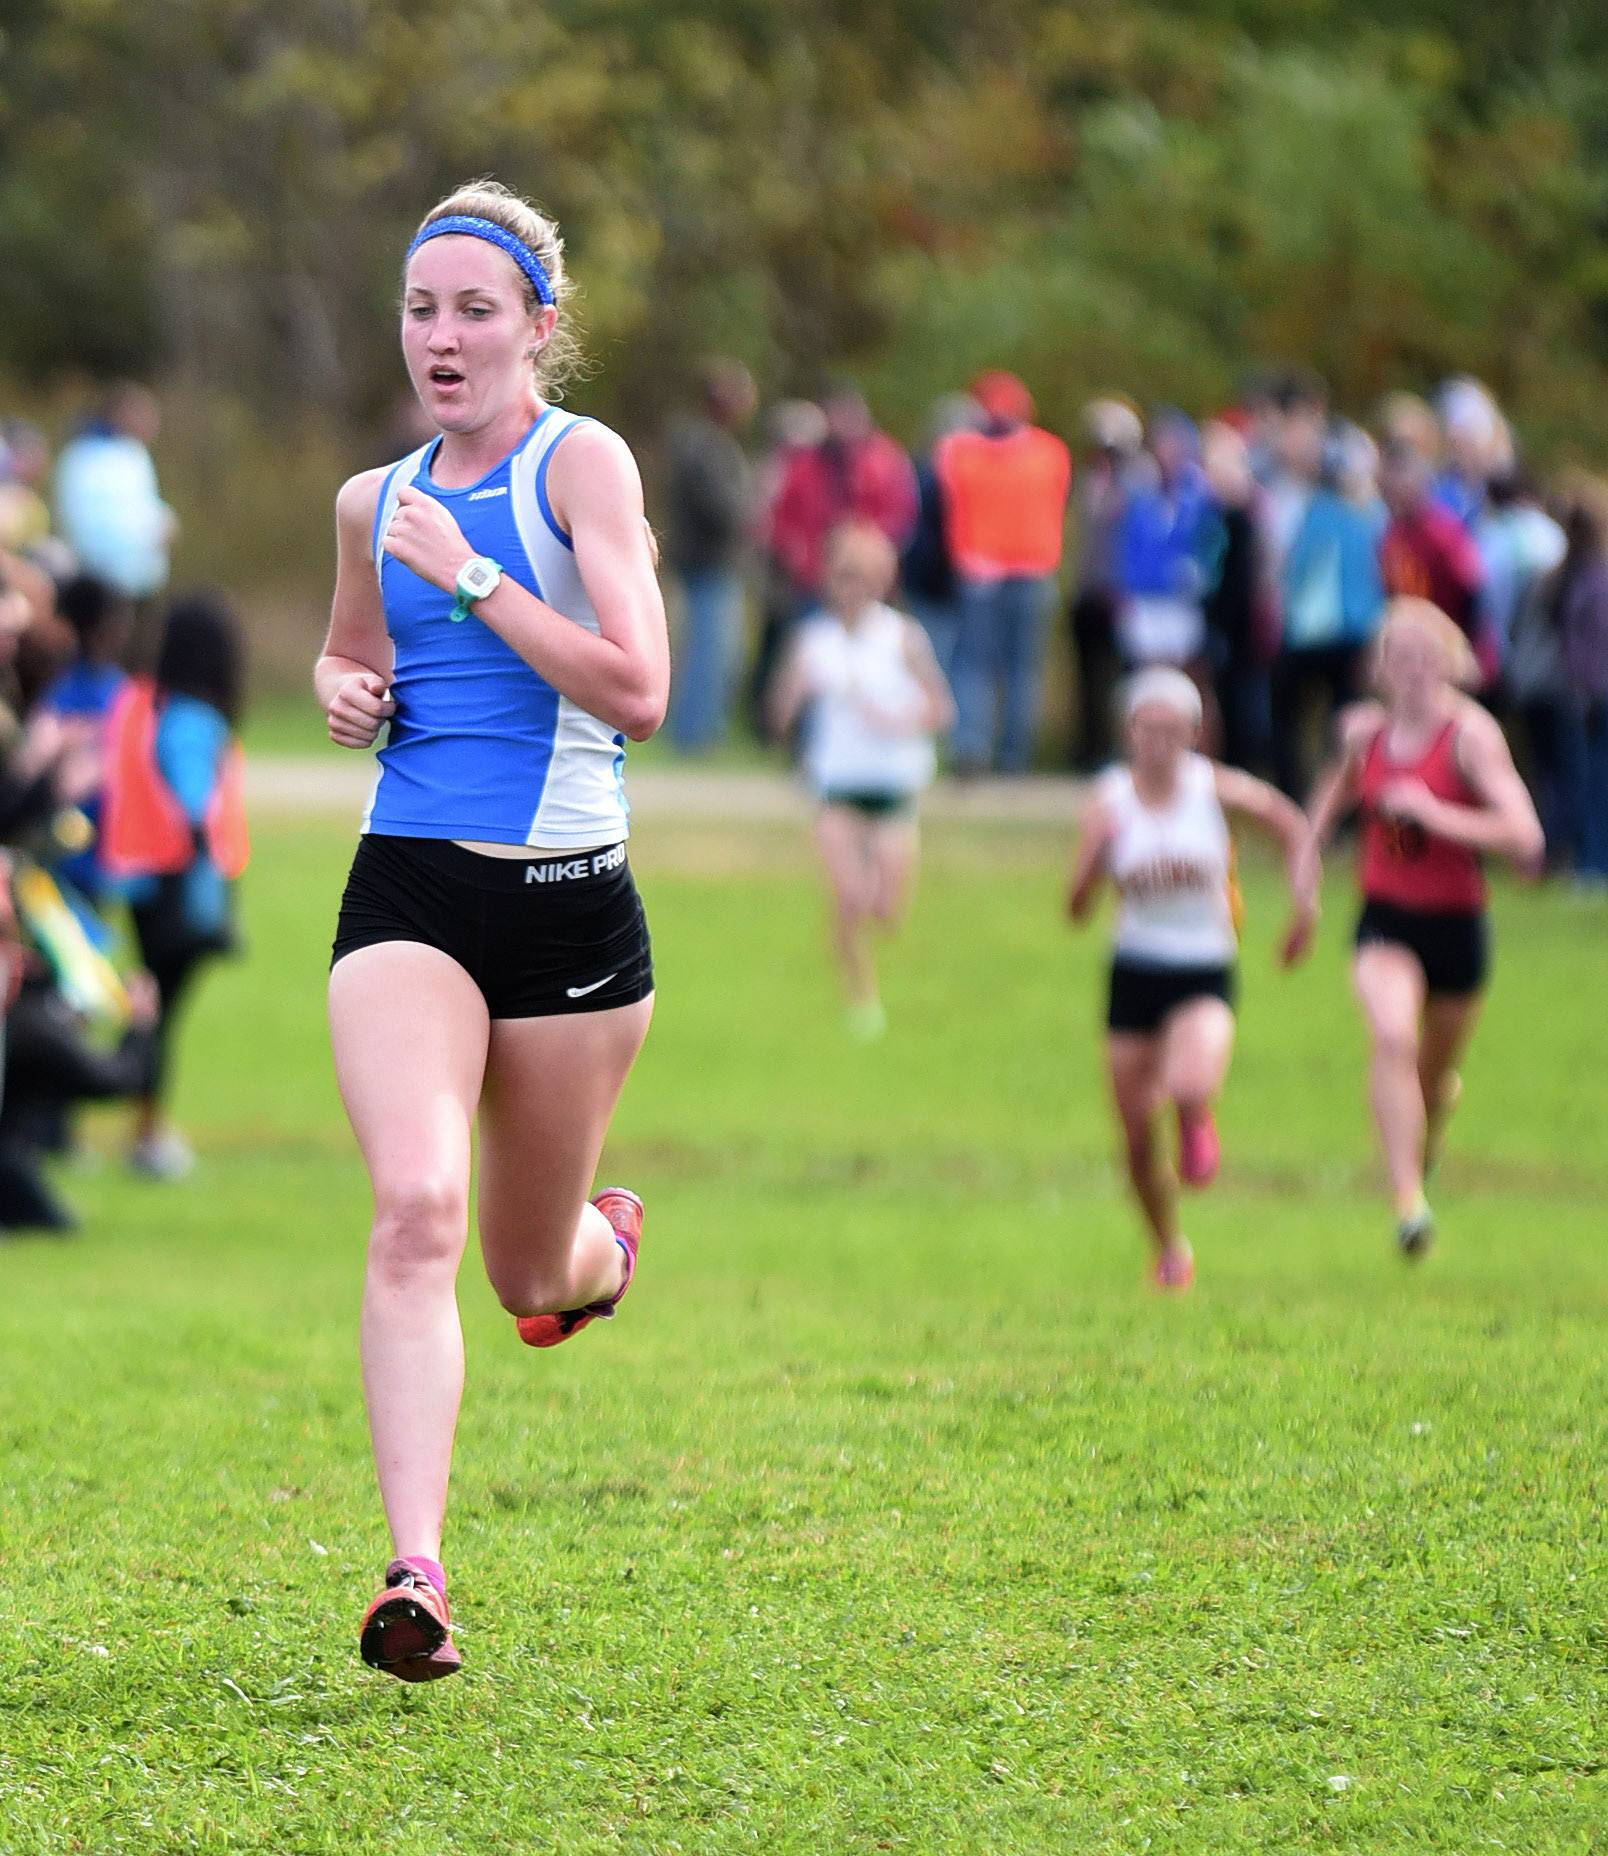 Lake Zurich's Caitlin Shepard takes second place in the girls varsity run with a time of 17:52.6 at the St. Charles North cross country invitational at LeRoy Oakes Saturday.